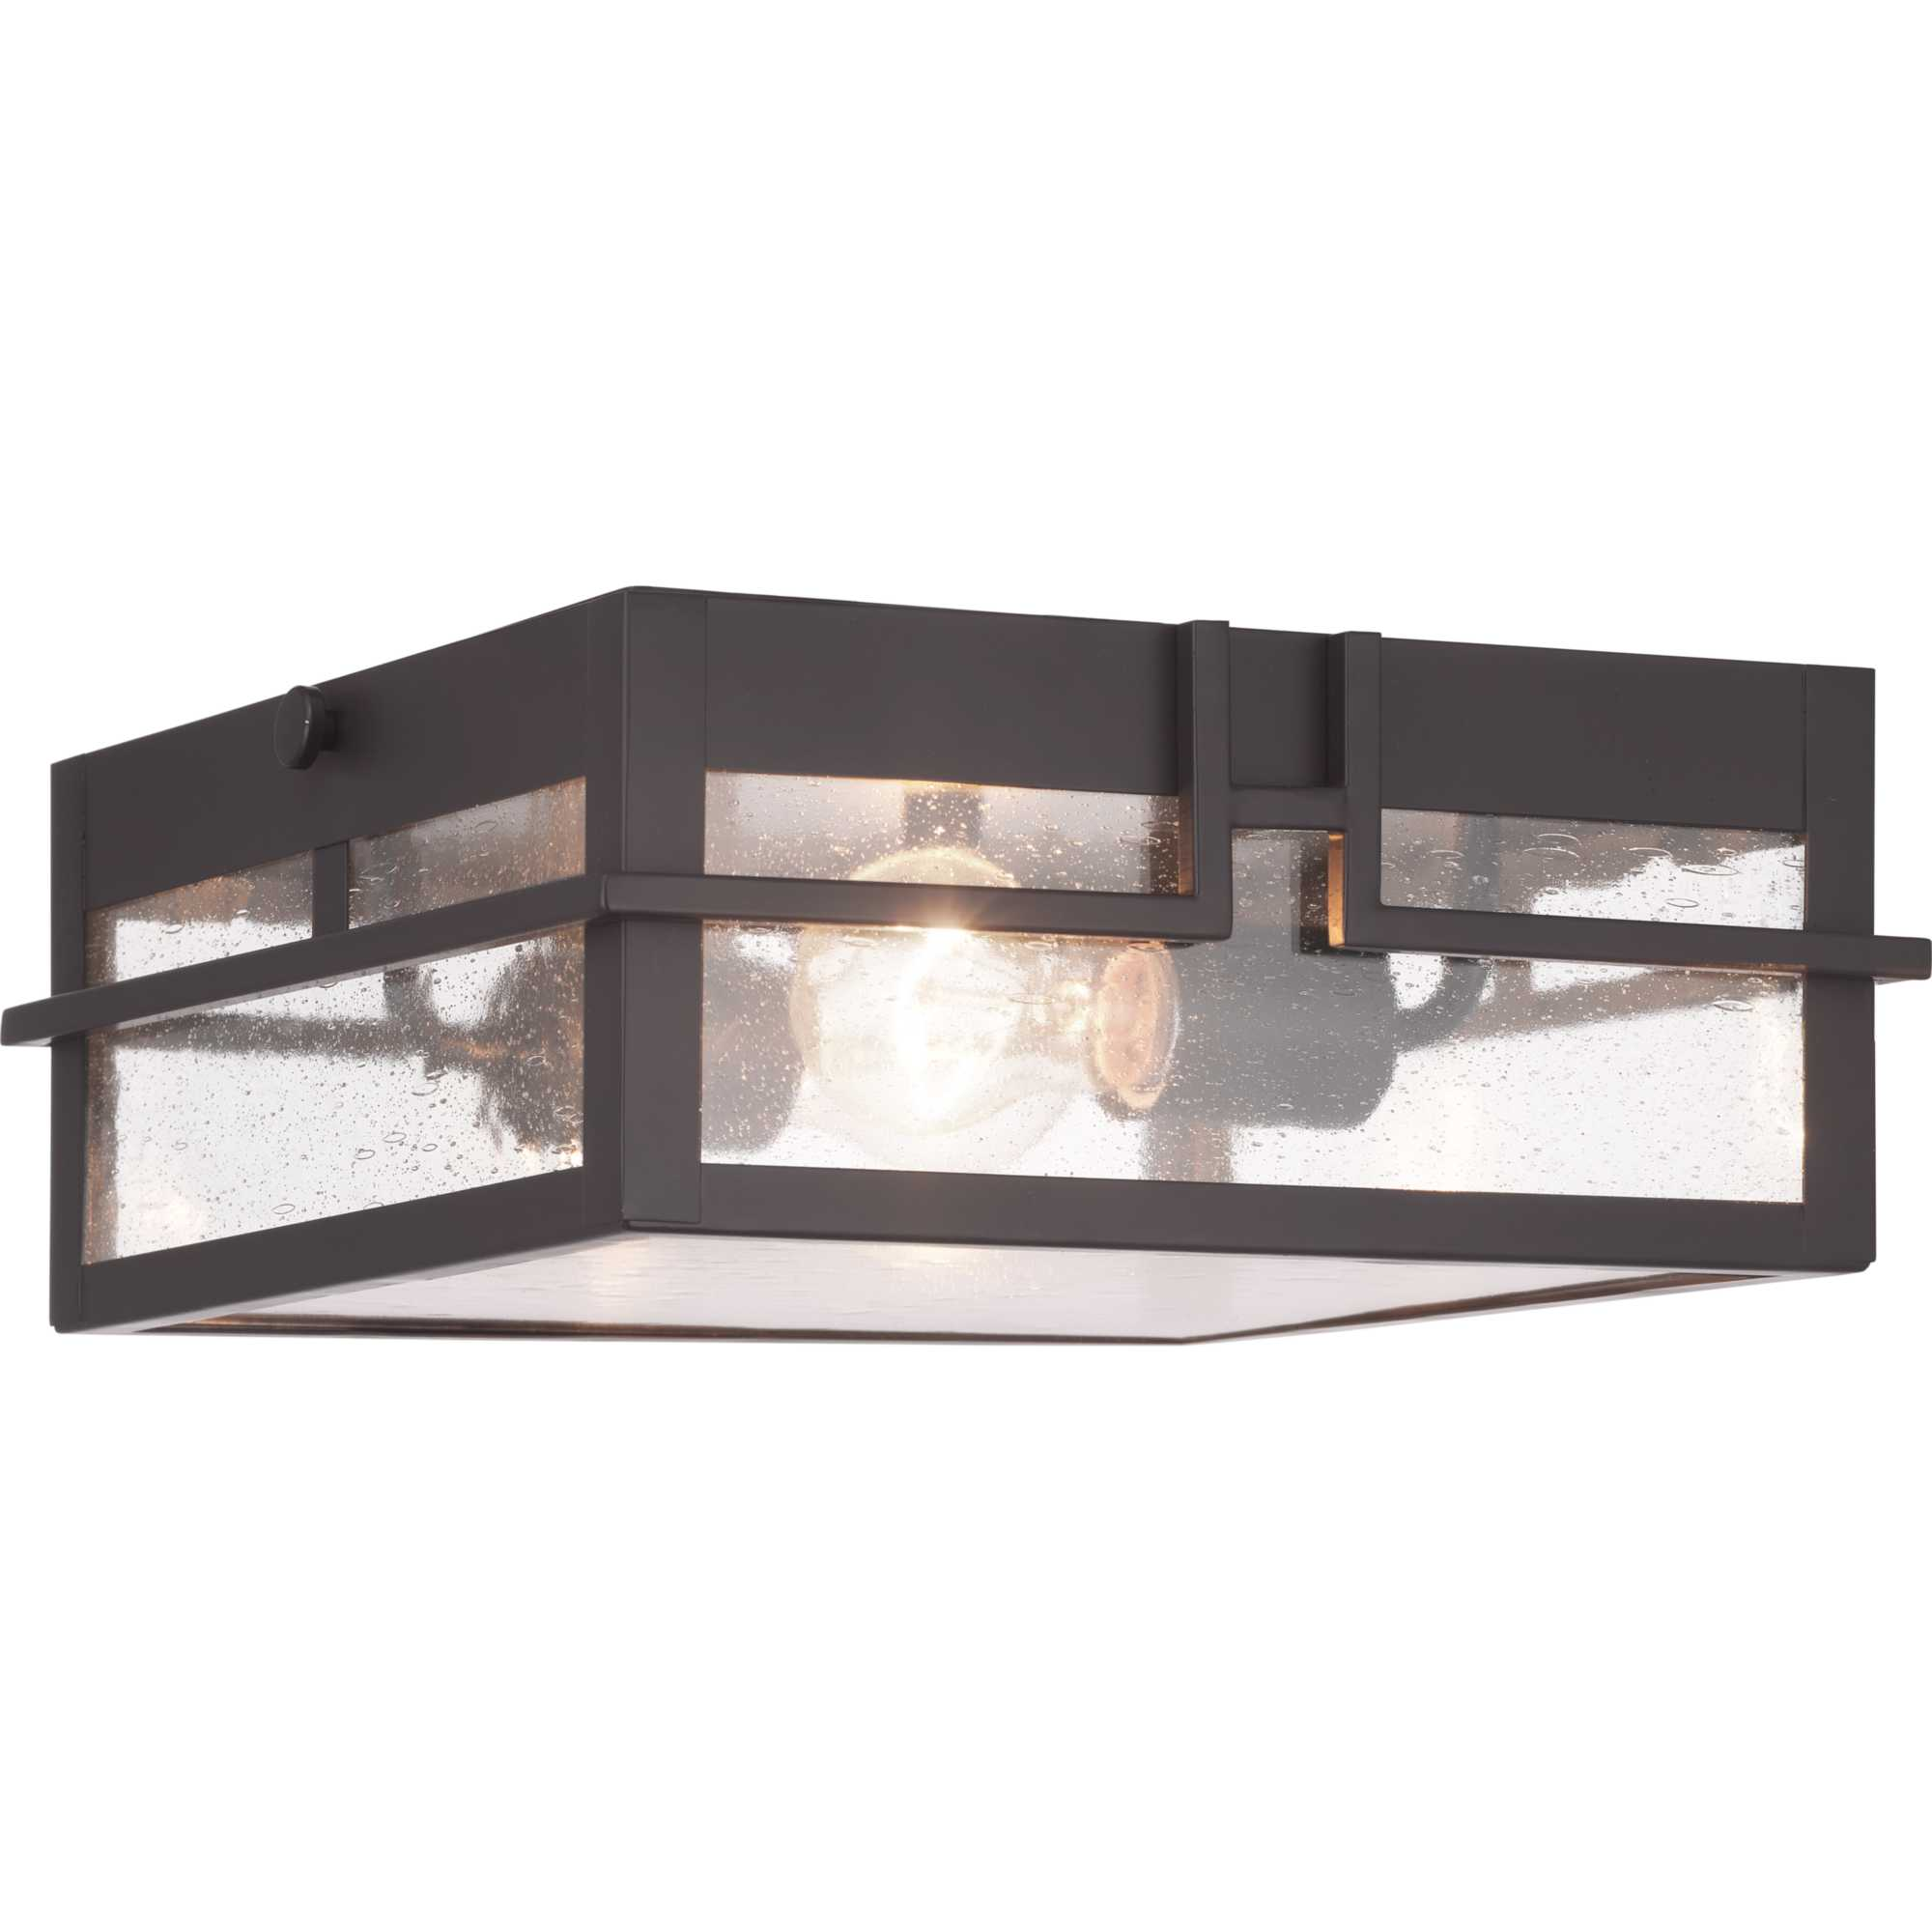 Progress Lighting P550038 020 Antique Bronze Boxwood 2 Light 11 Wide Outdoor Flush Mount Square Ceiling Fixture Lightingdirect Com